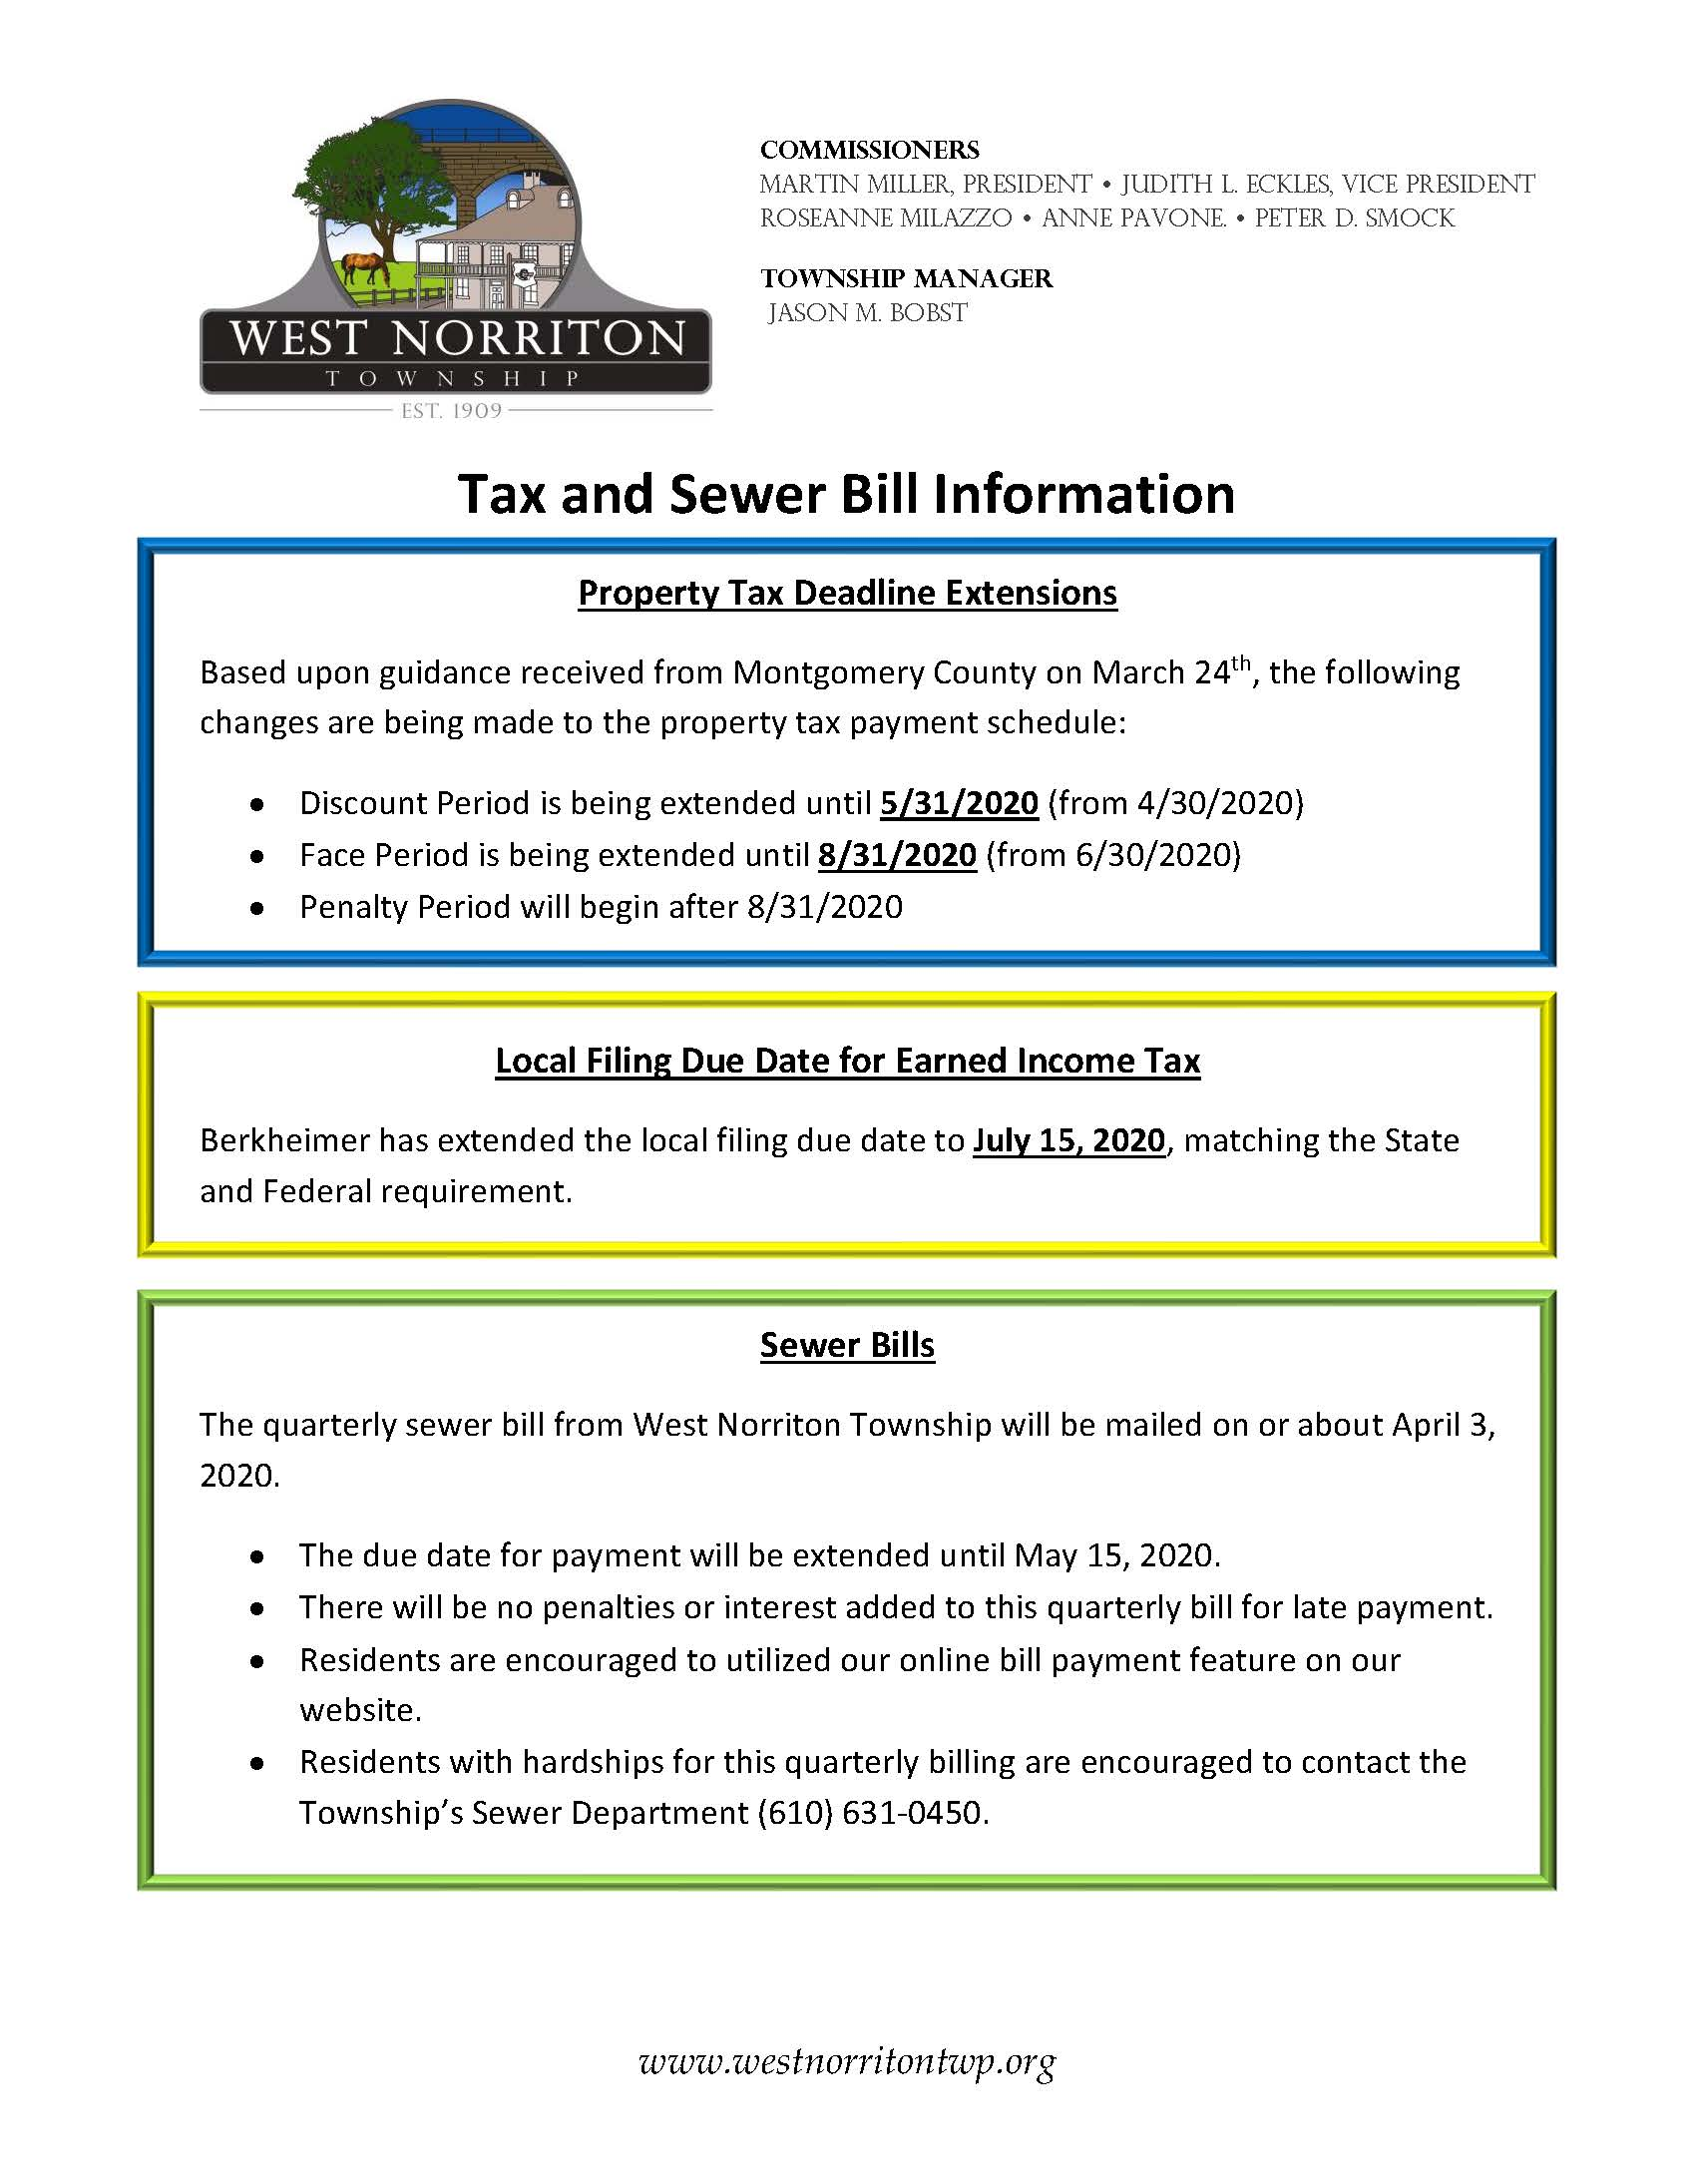 Tax and Sewer Information